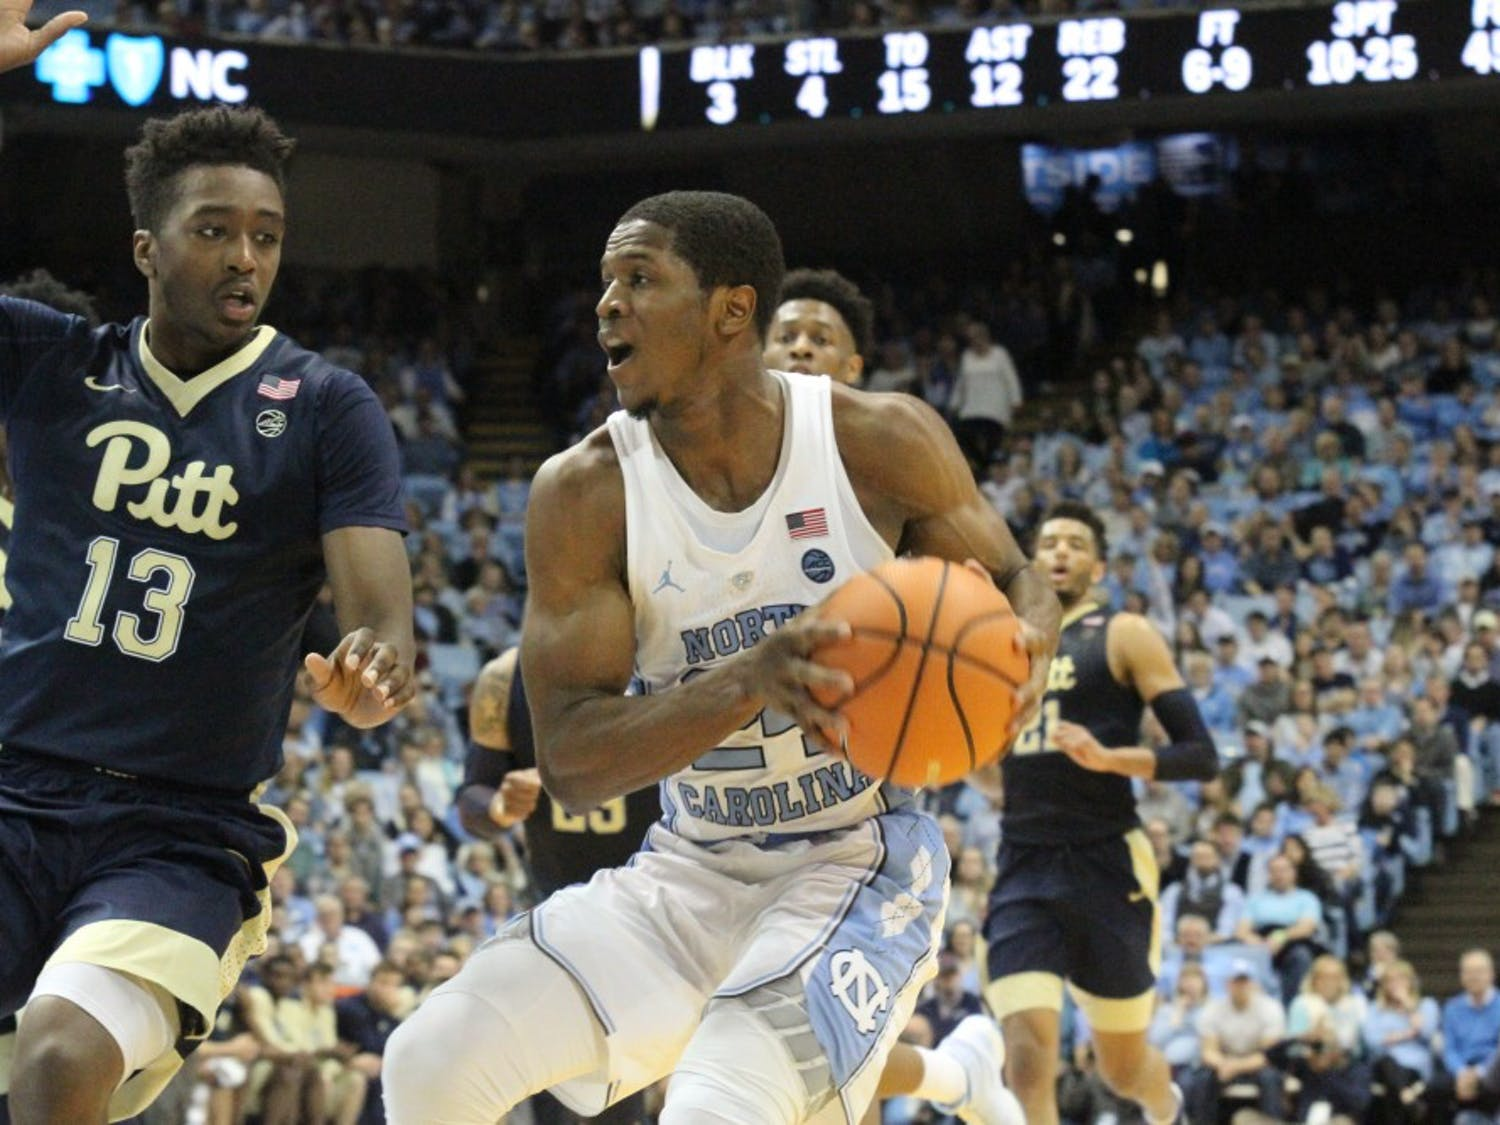 Guard Kenny Williams (24) drives to the basket against Pittsburgh on Feb. 3 in the Smith Center.